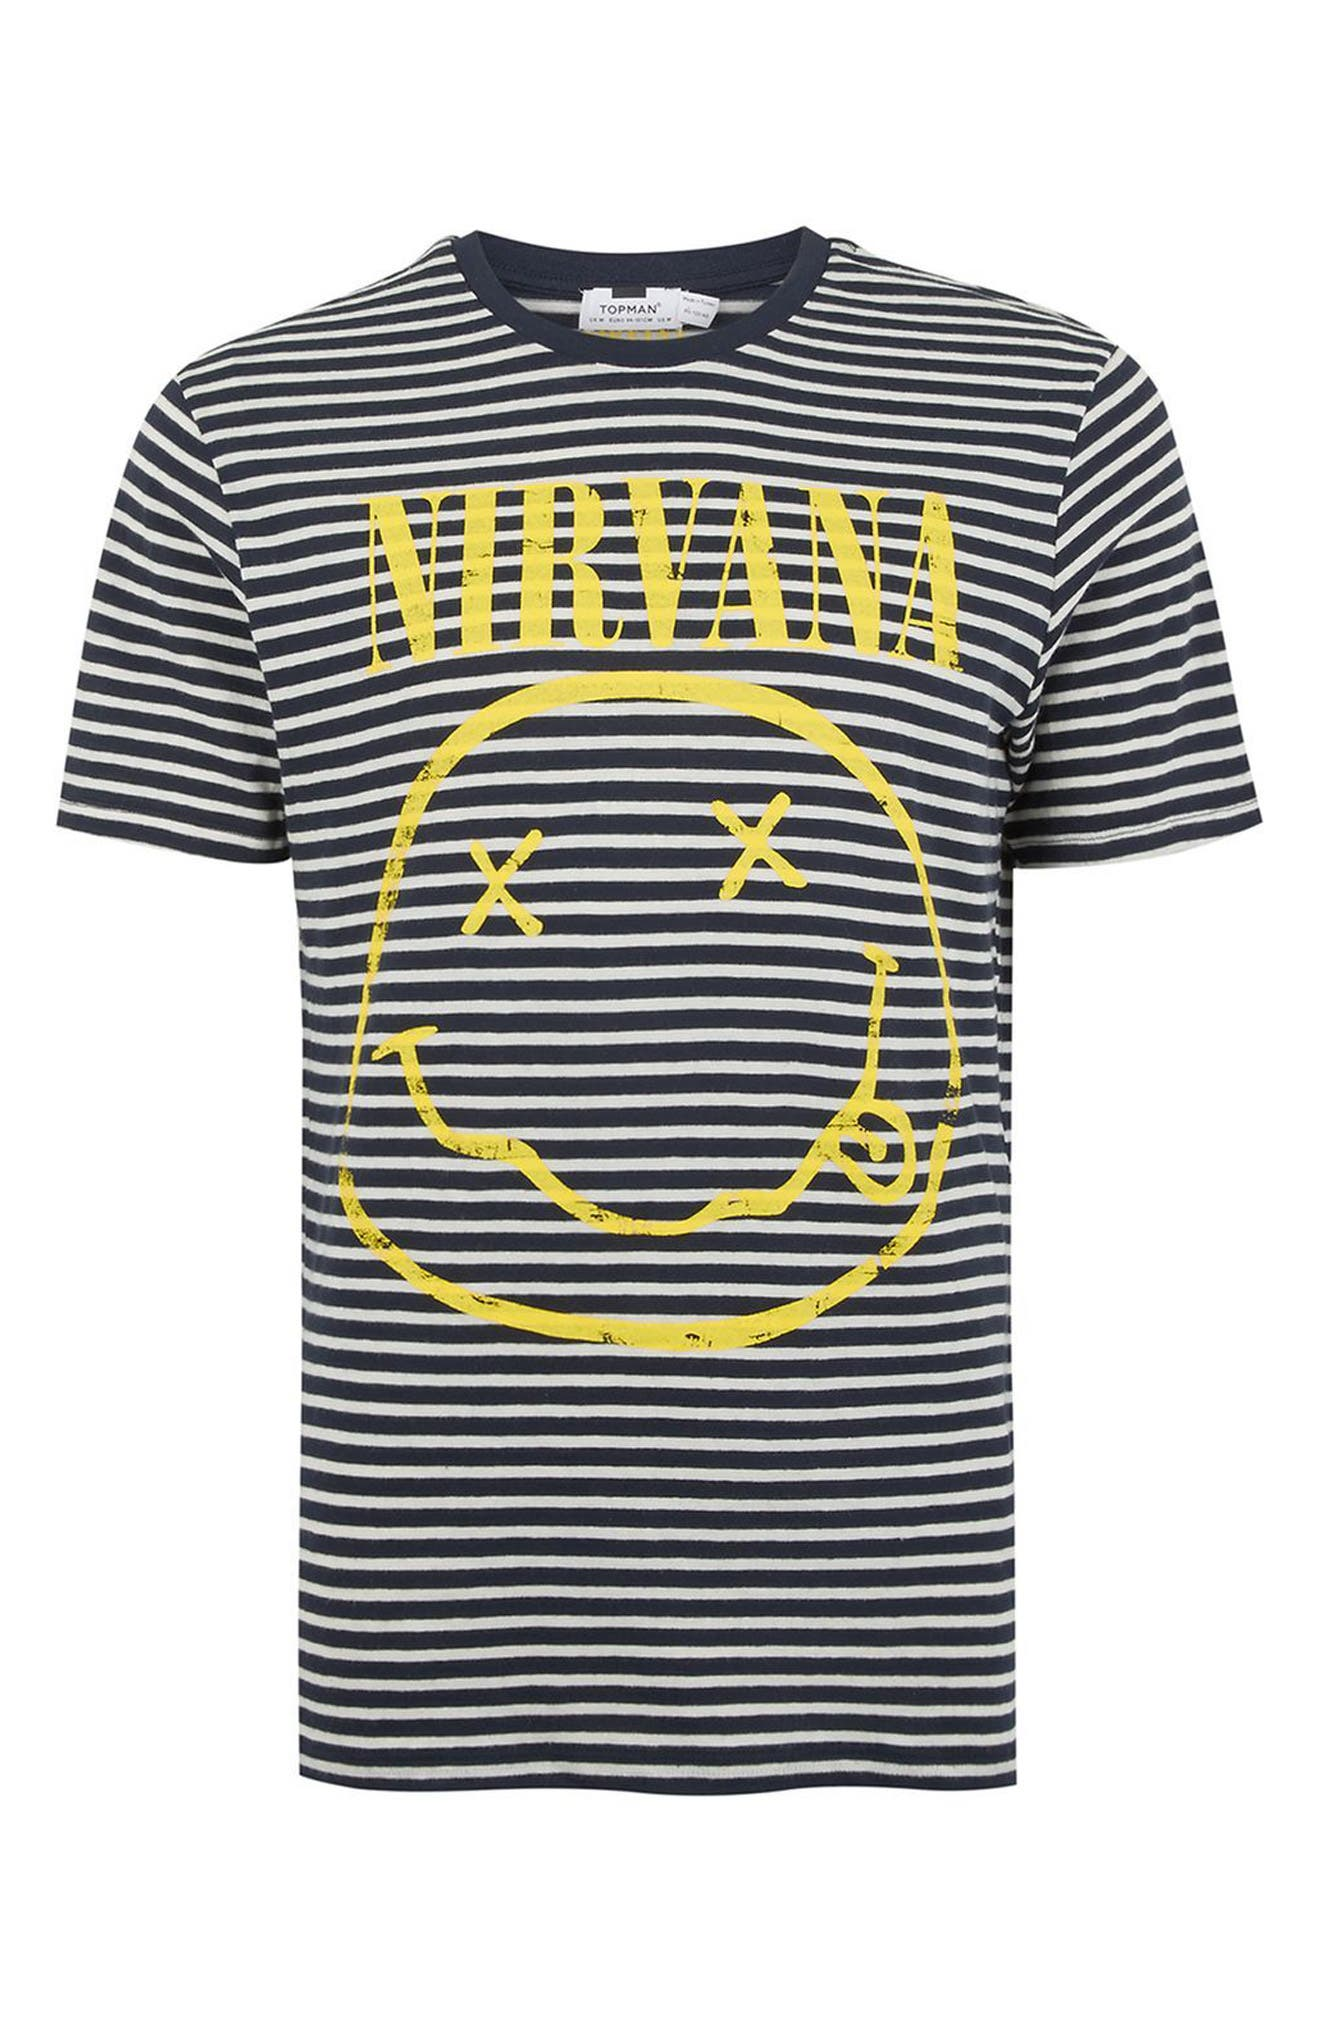 Nirvana Stripe T-Shirt,                             Alternate thumbnail 4, color,                             Dark Blue Multi